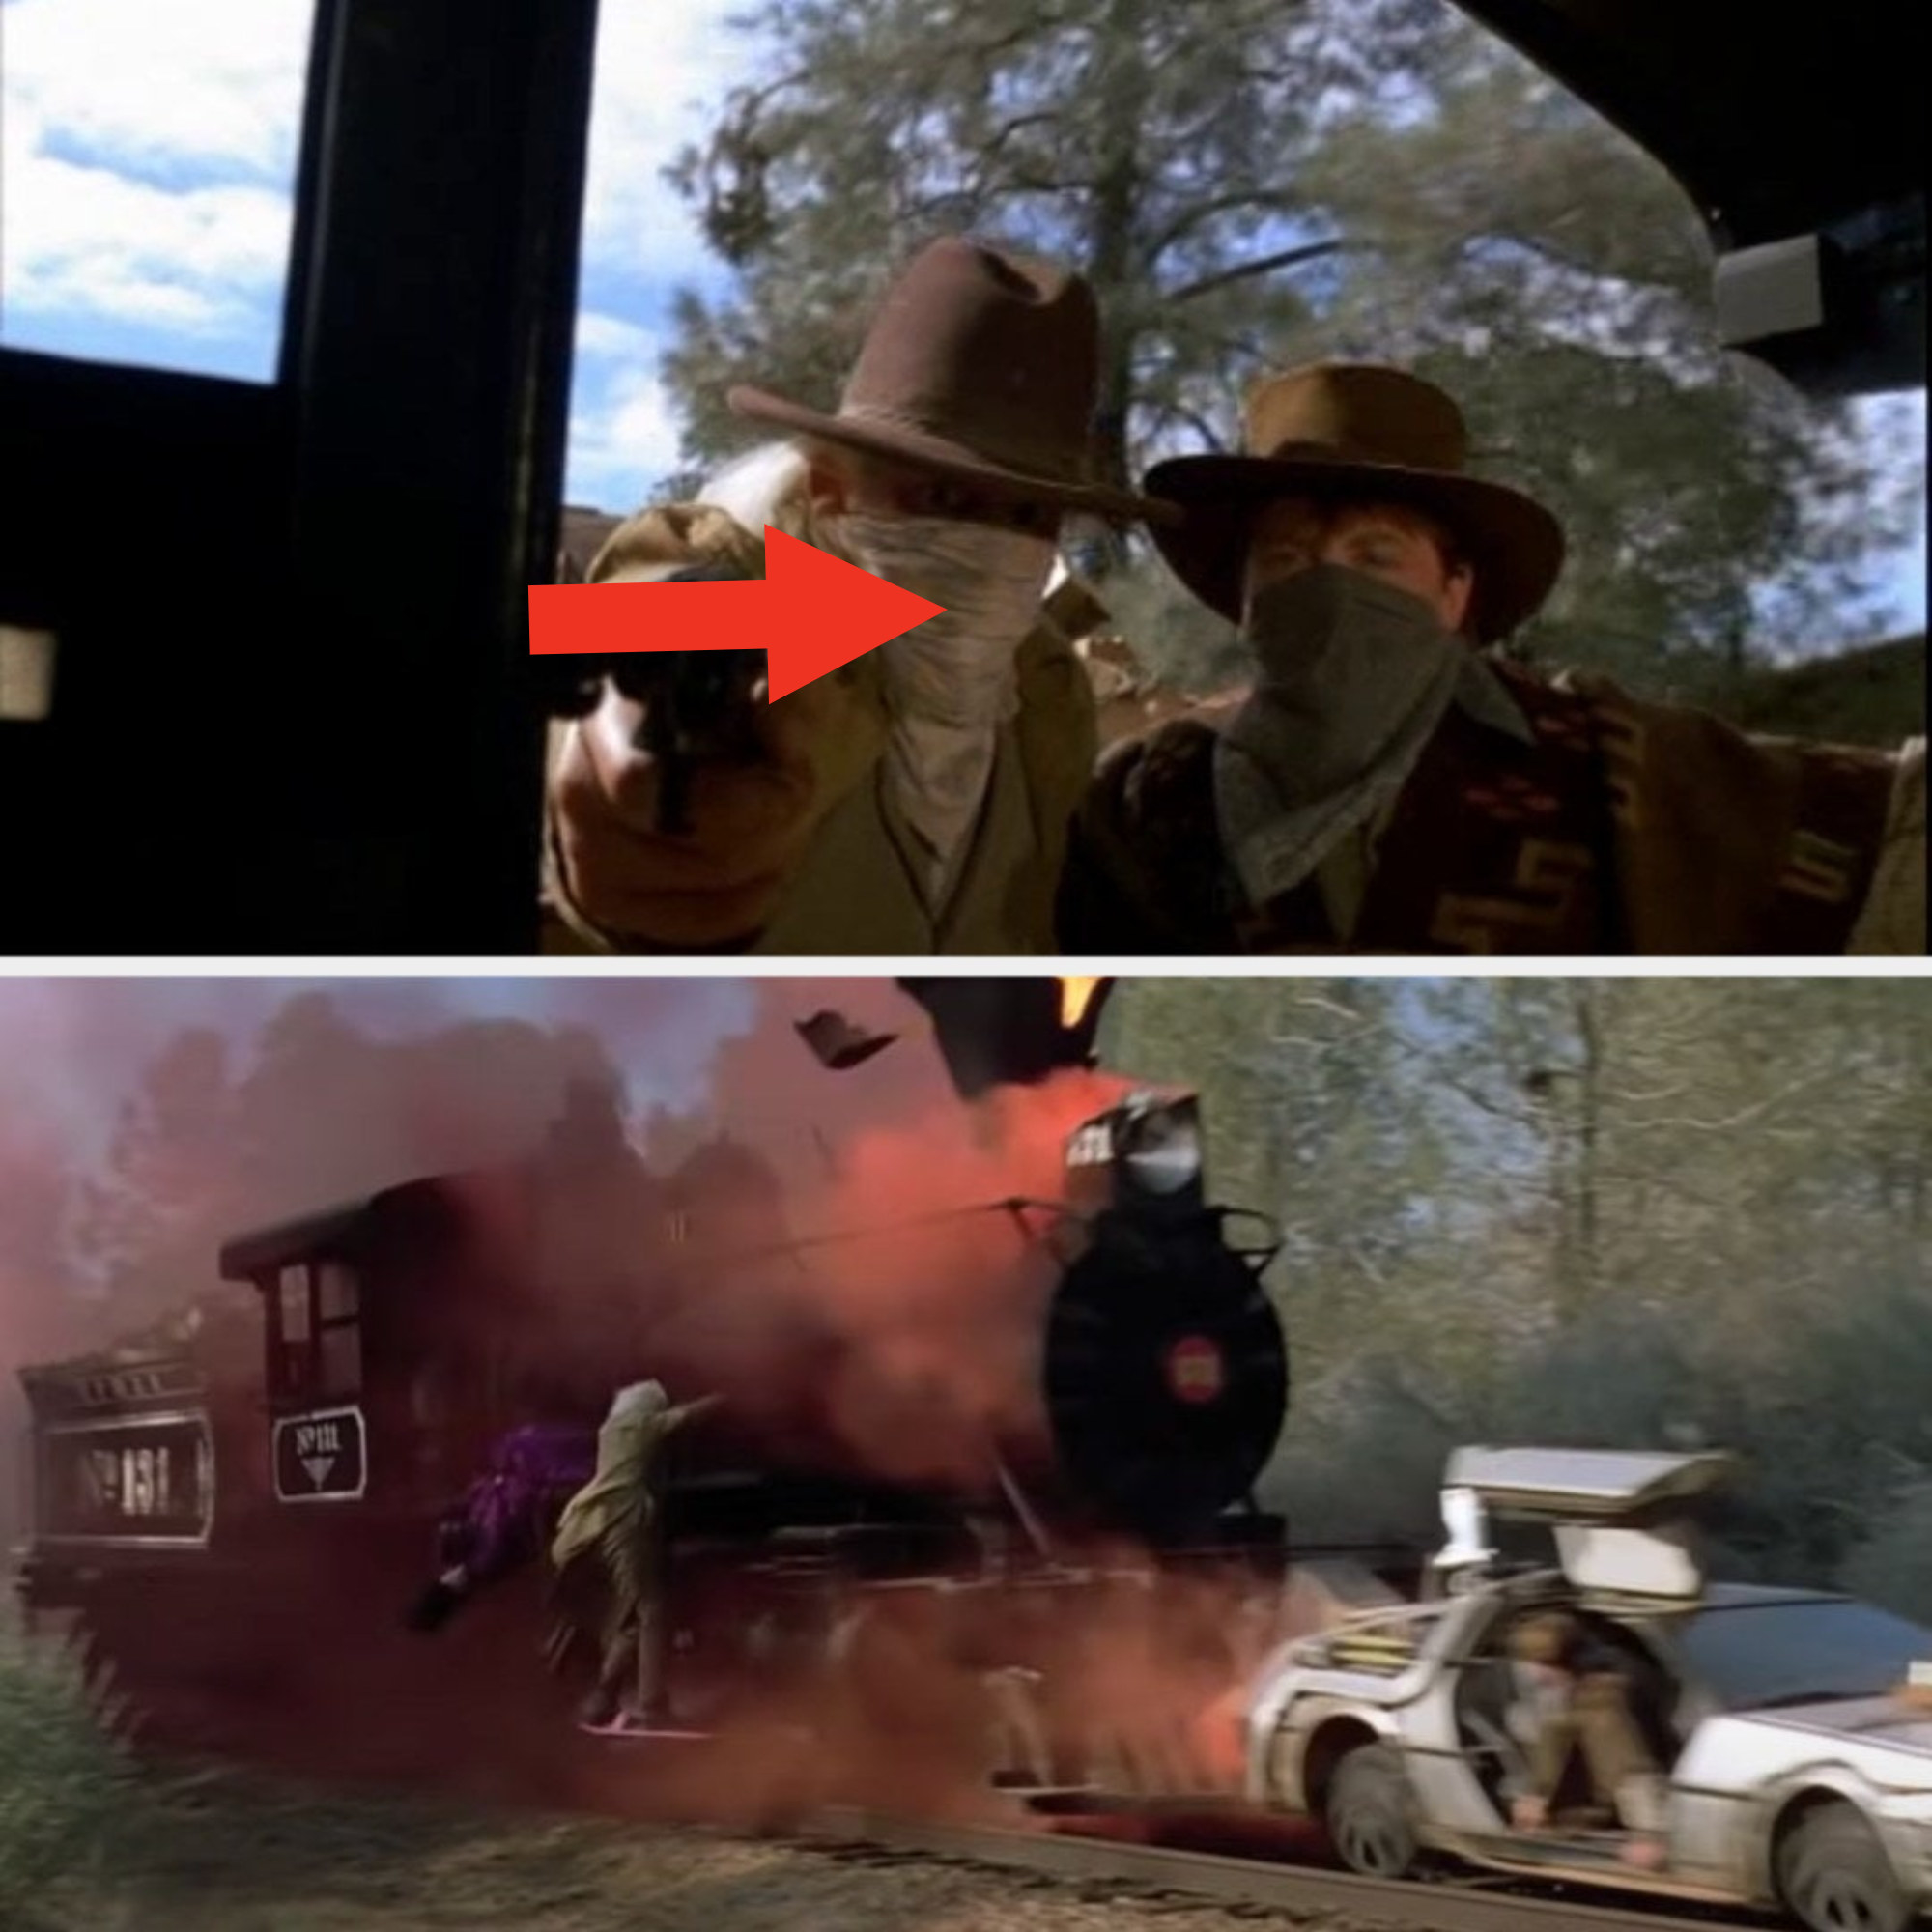 Doc and Marty dressed like cowboys and chasing after a train